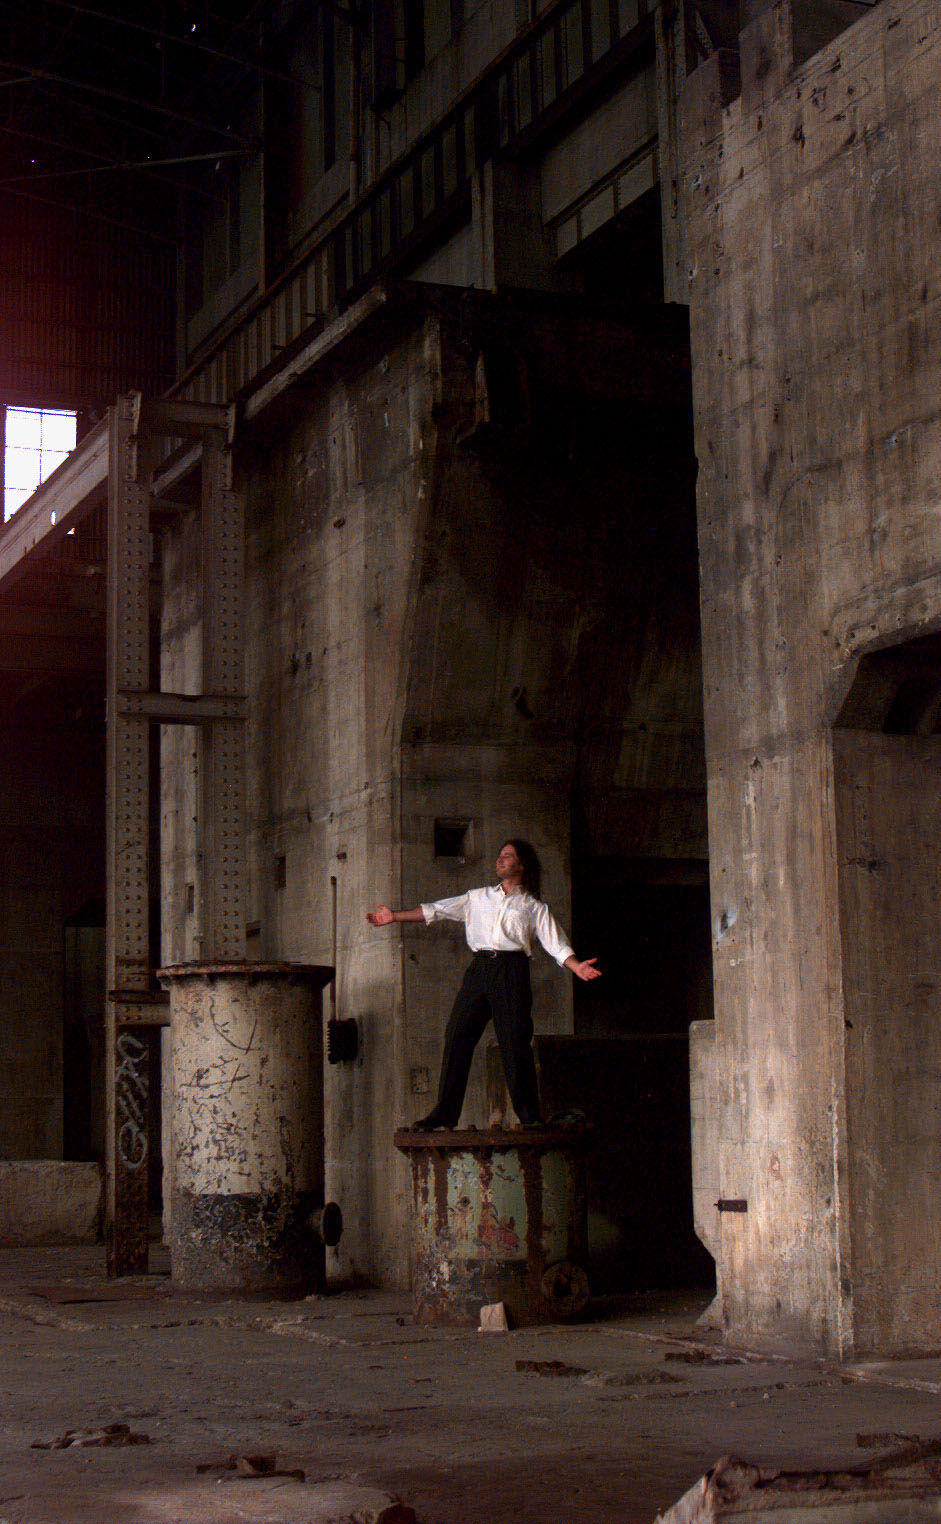 Late last Millenia the abandoned Rozelle power station was used as a secret performance space for young soprano Mark Da Silva.